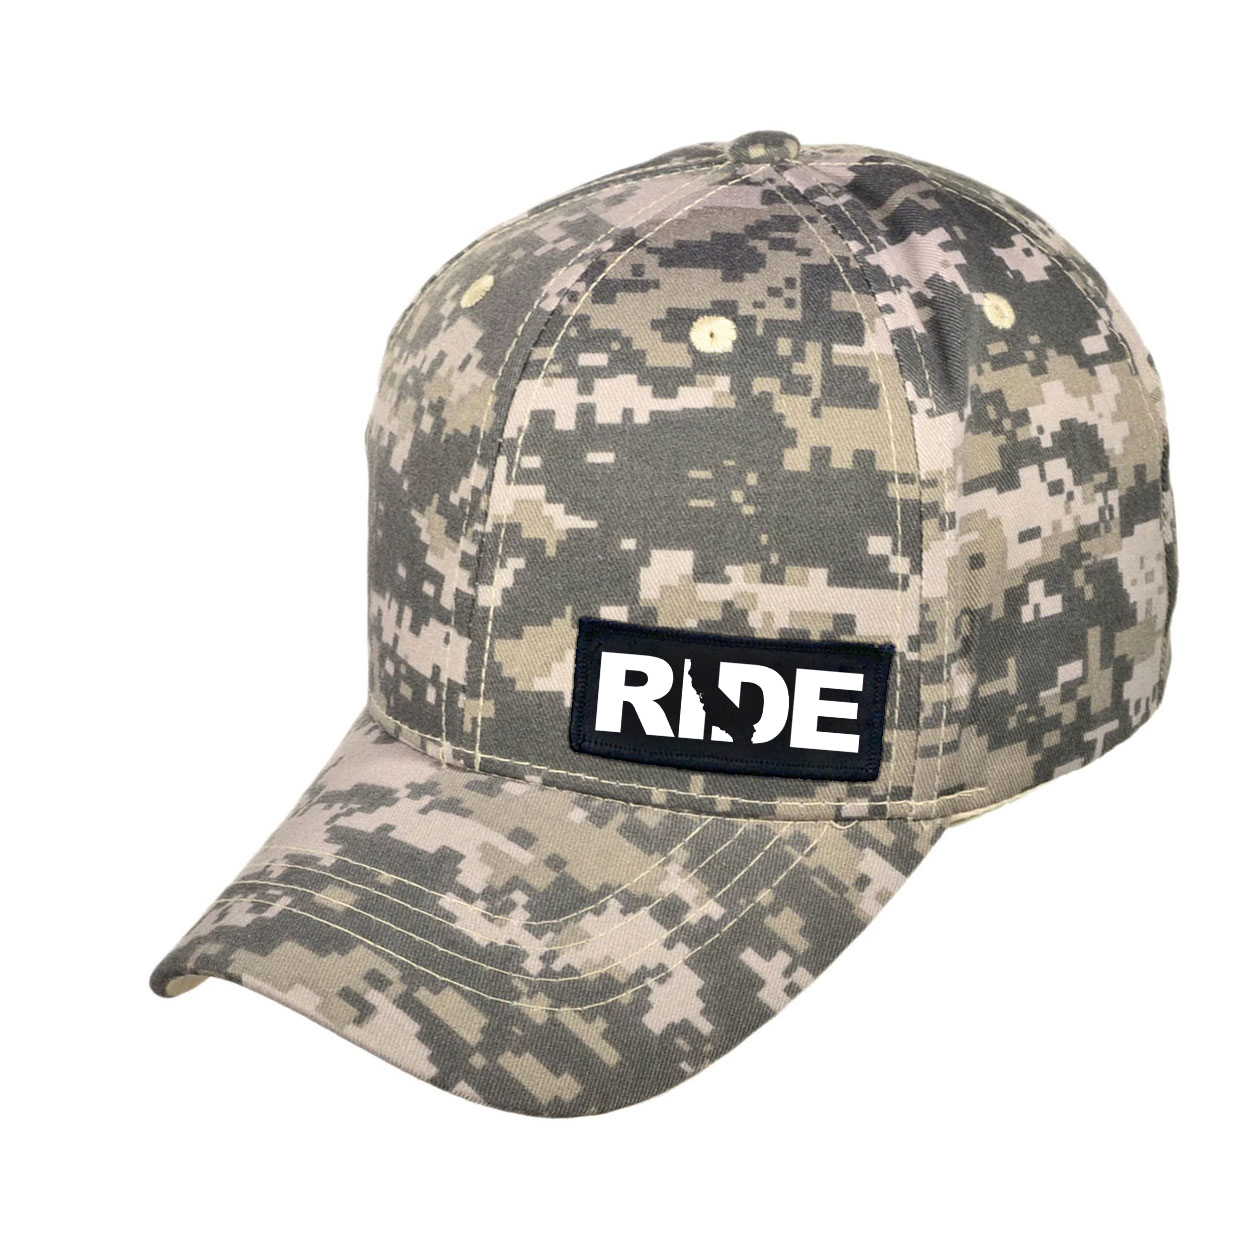 Ride California Night Out Woven Patch Hat Digital Camo (White Logo)